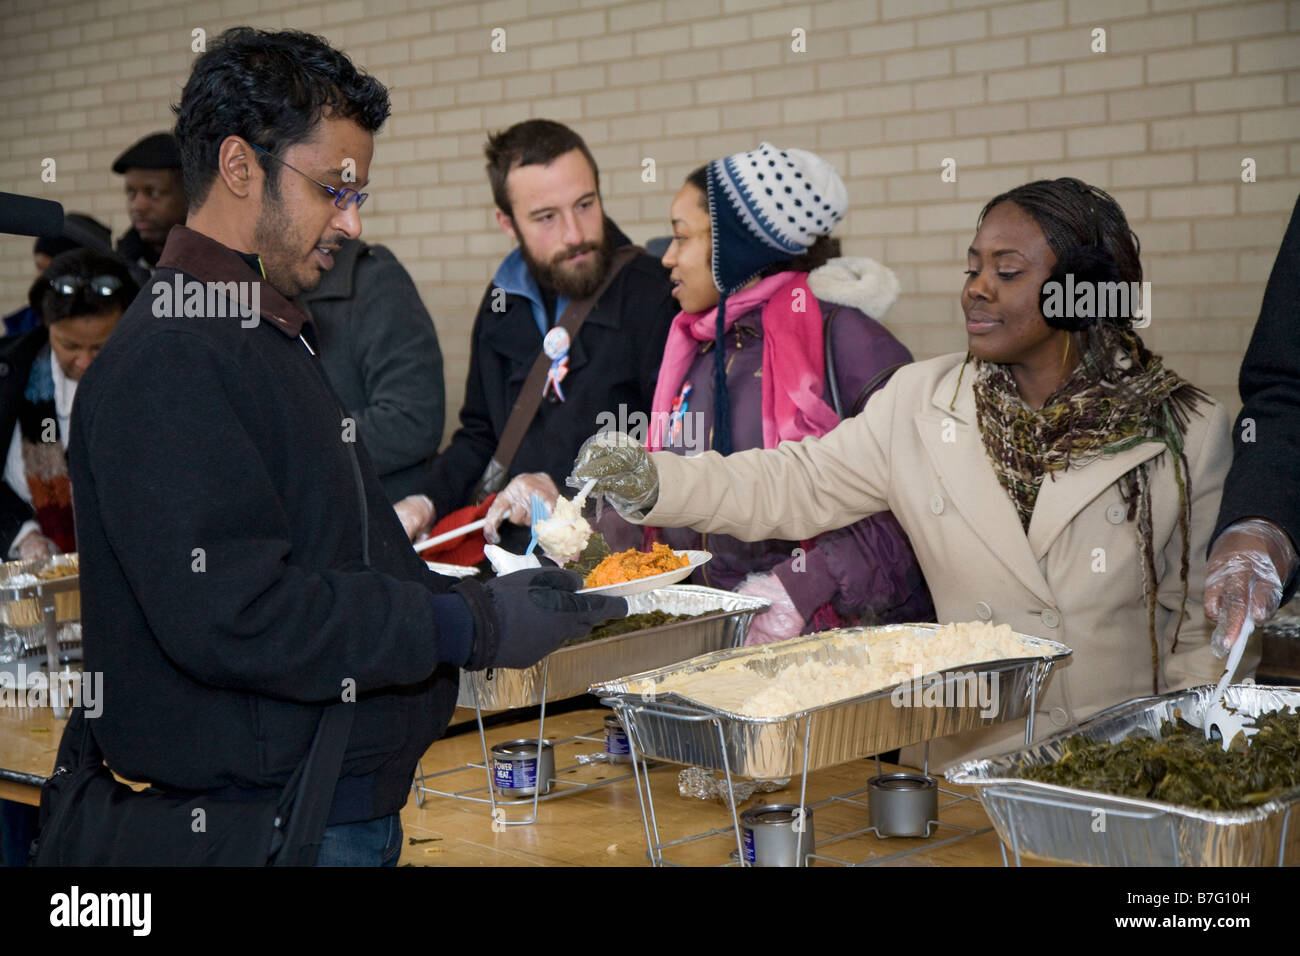 Volunteers Serve Meal To The Homeless At Outdoor Soup Kitchen